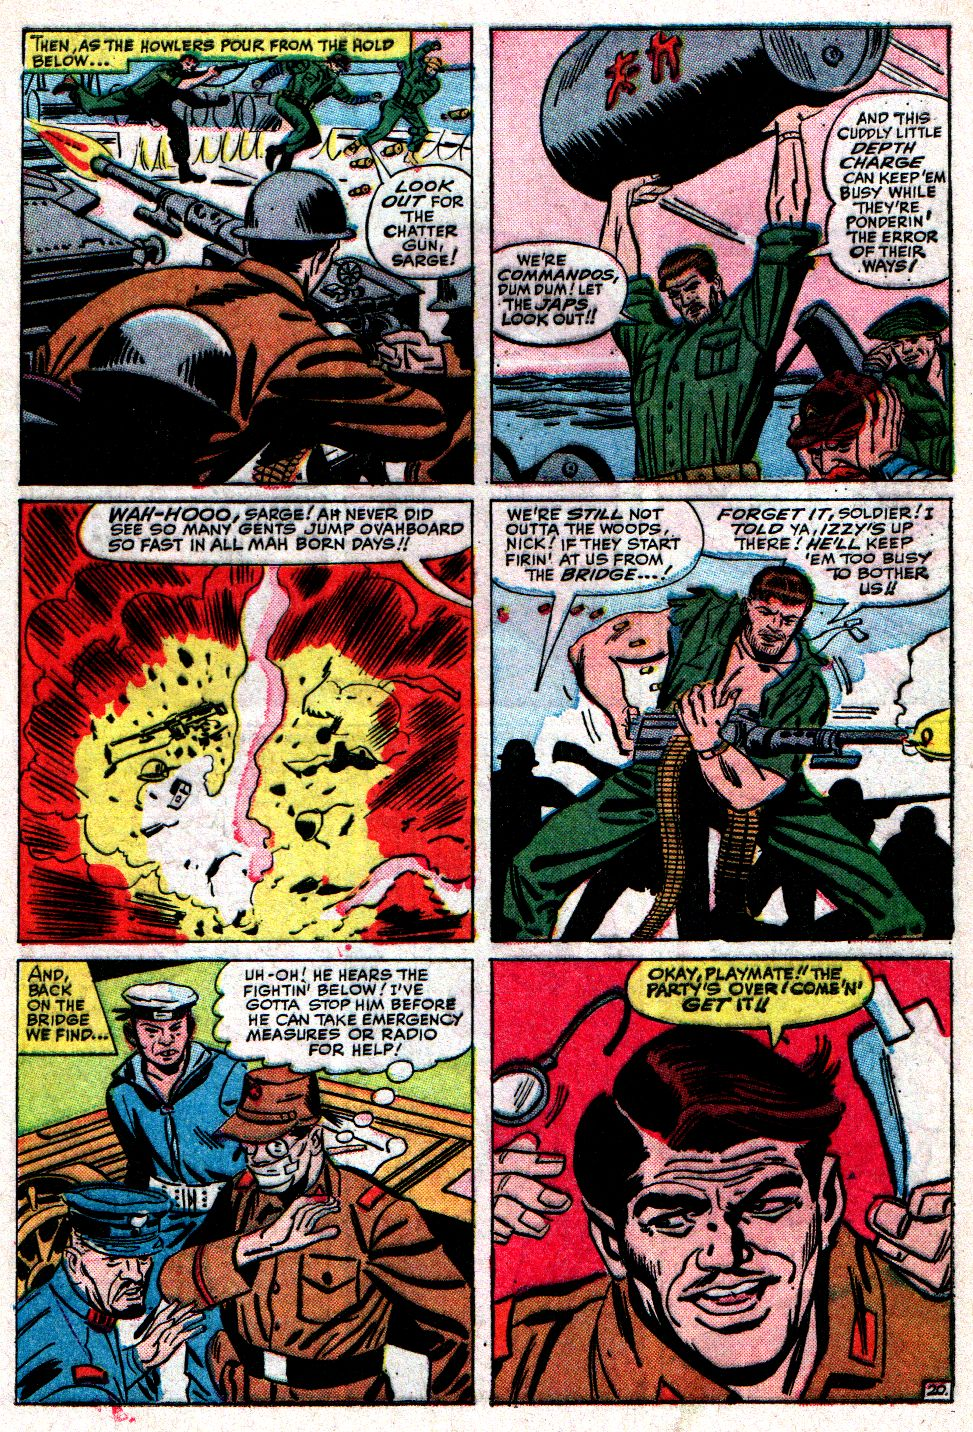 Read online Sgt. Fury comic -  Issue #10 - 29